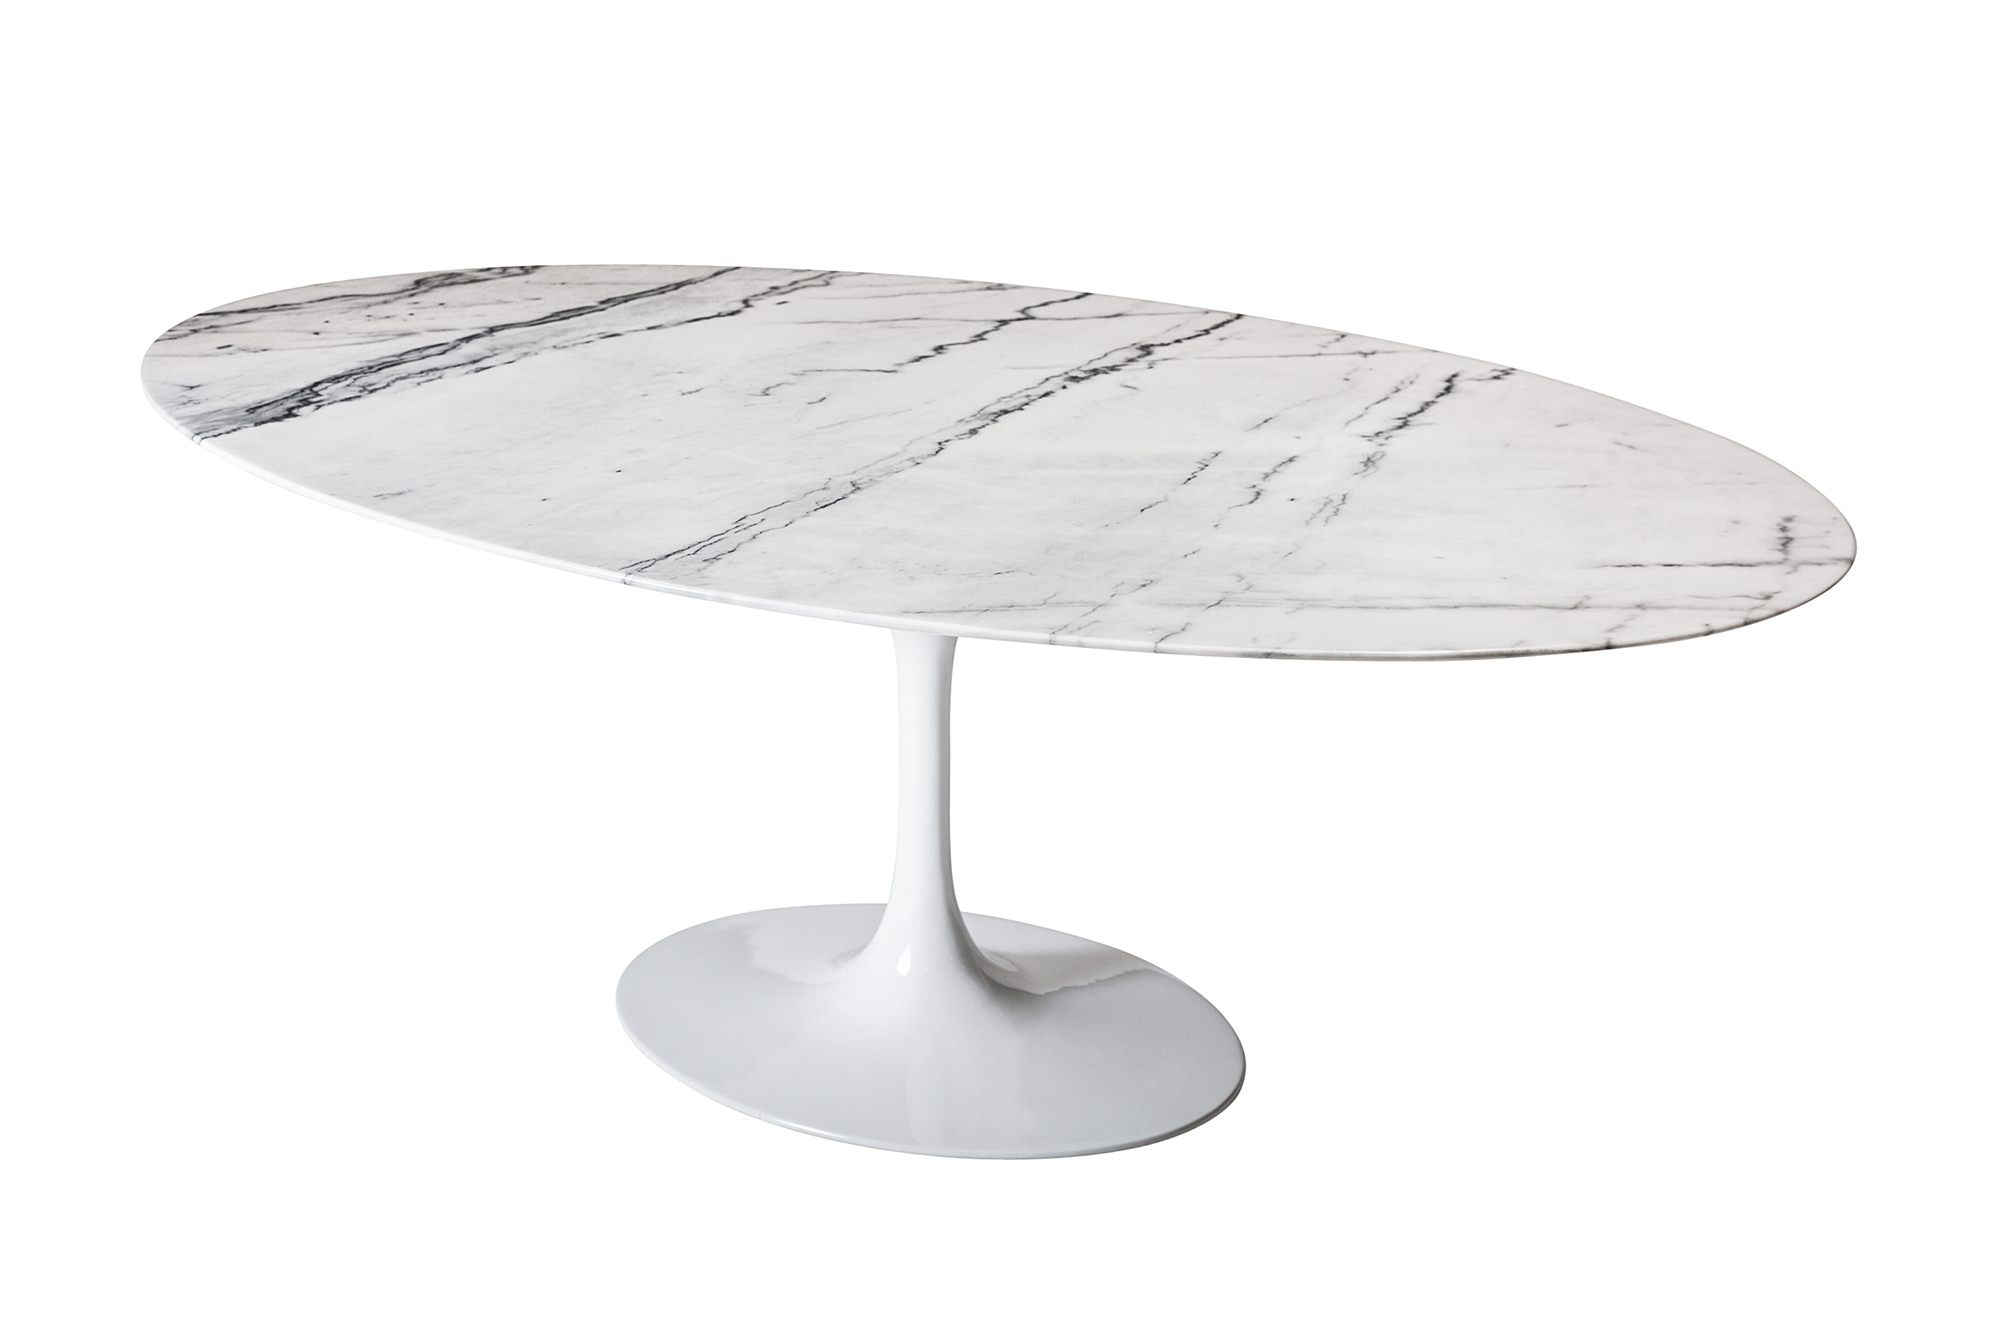 Saarinen Style Tulip Marble Dining Table Oval - Saarinen carrara marble table